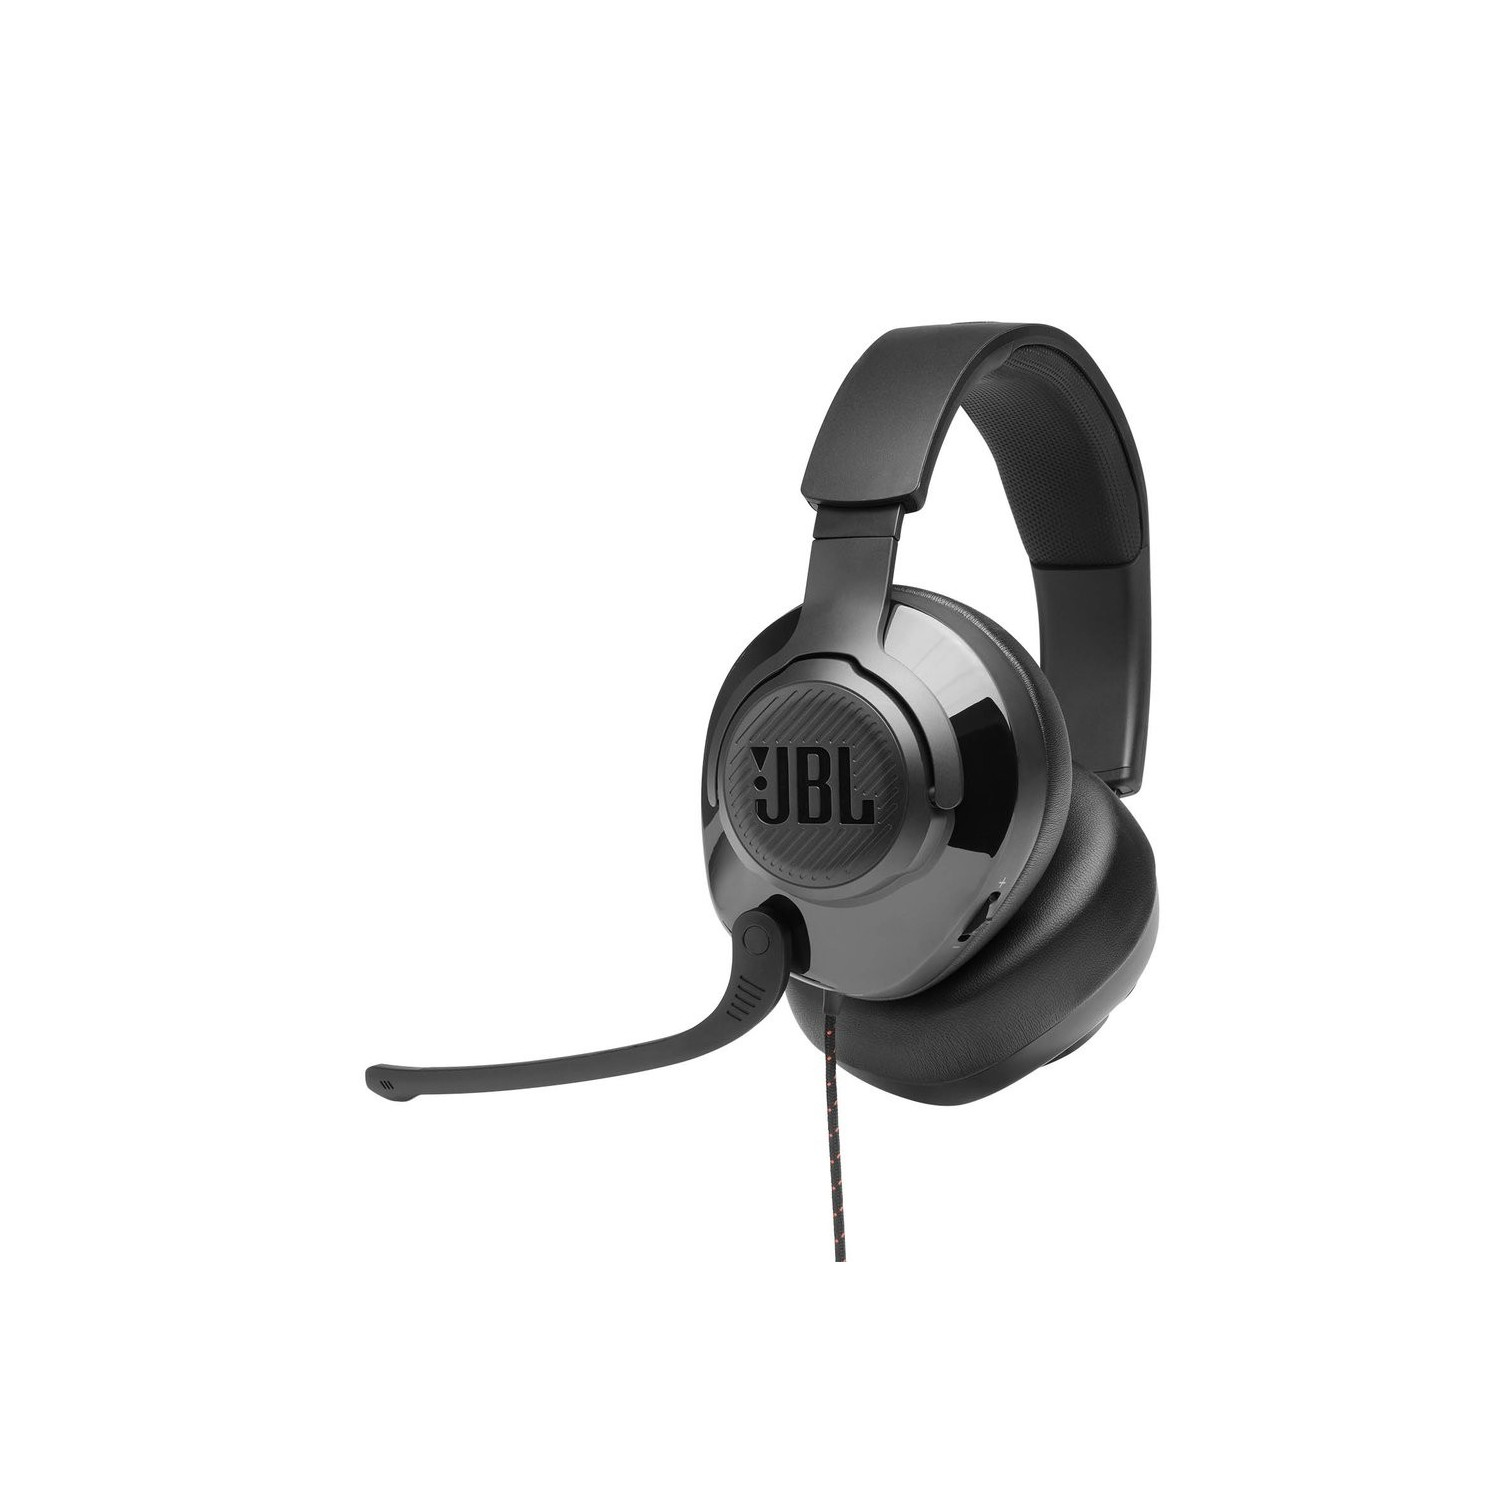 Headset - JBL Quantum 200 Wired Over-Ear Gaming Headset W/ Mic - Black